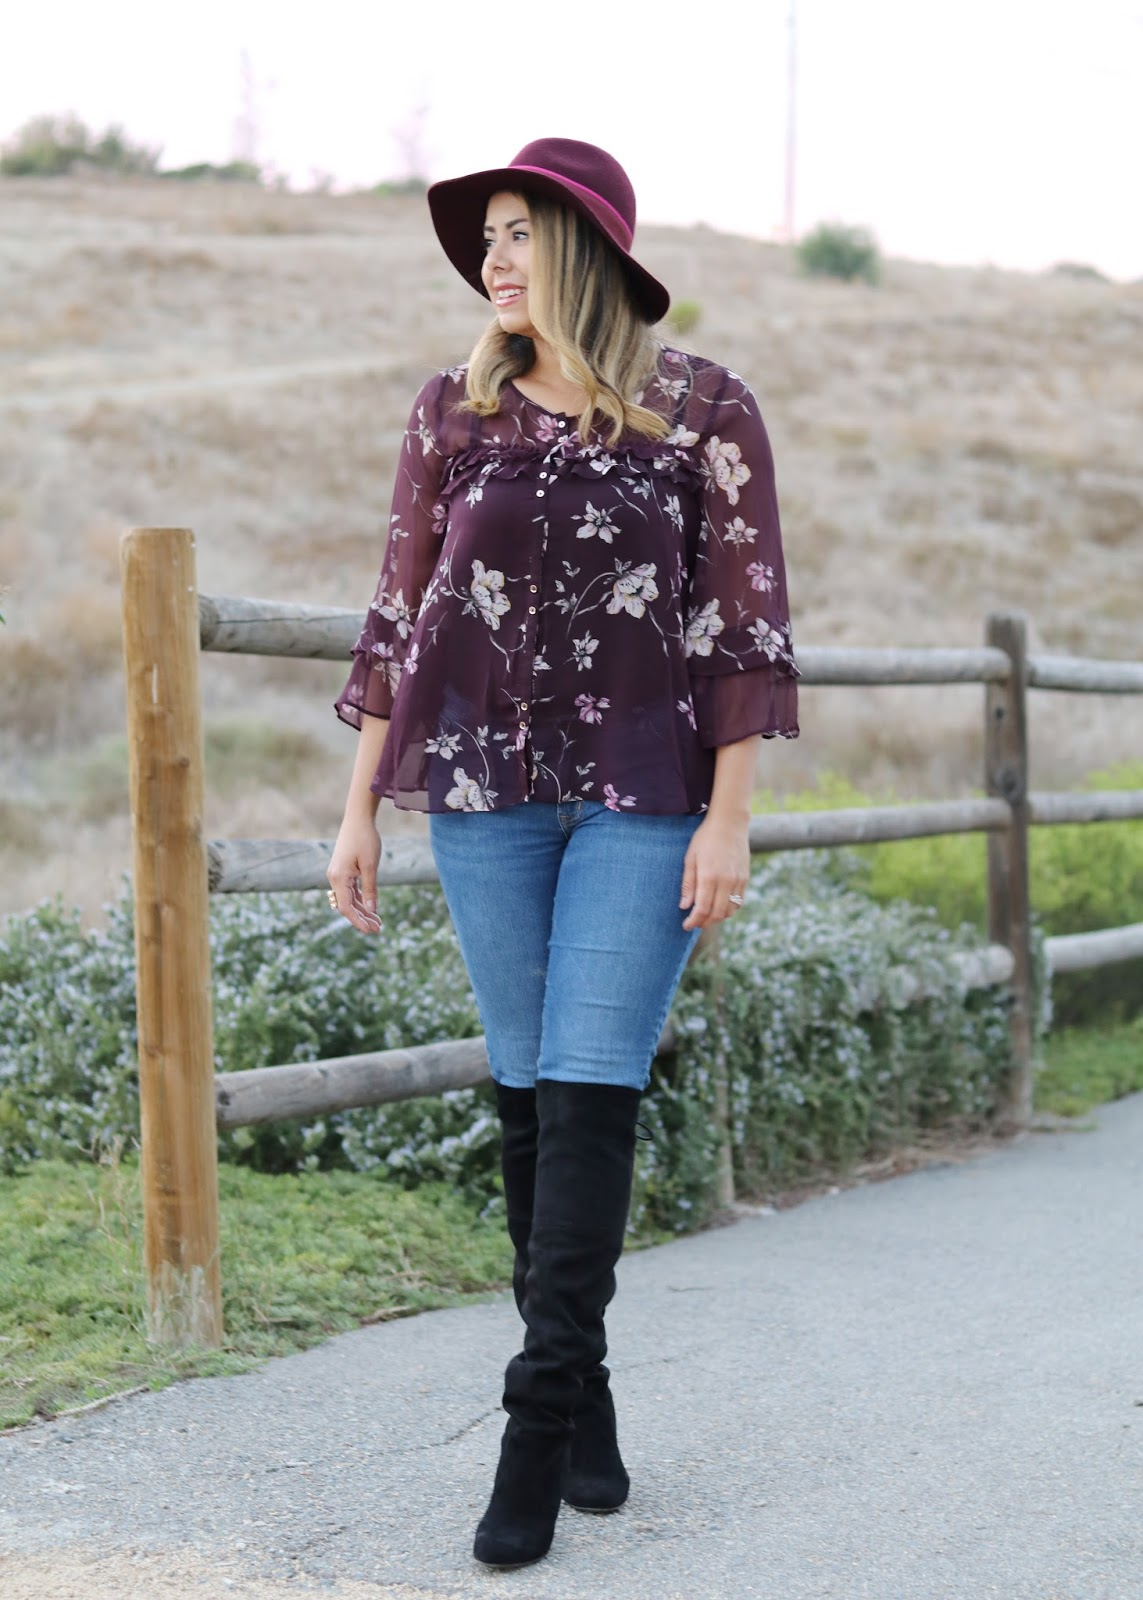 Burgundy outfit idea, how to wear hats for fall, casual fall outfit idea